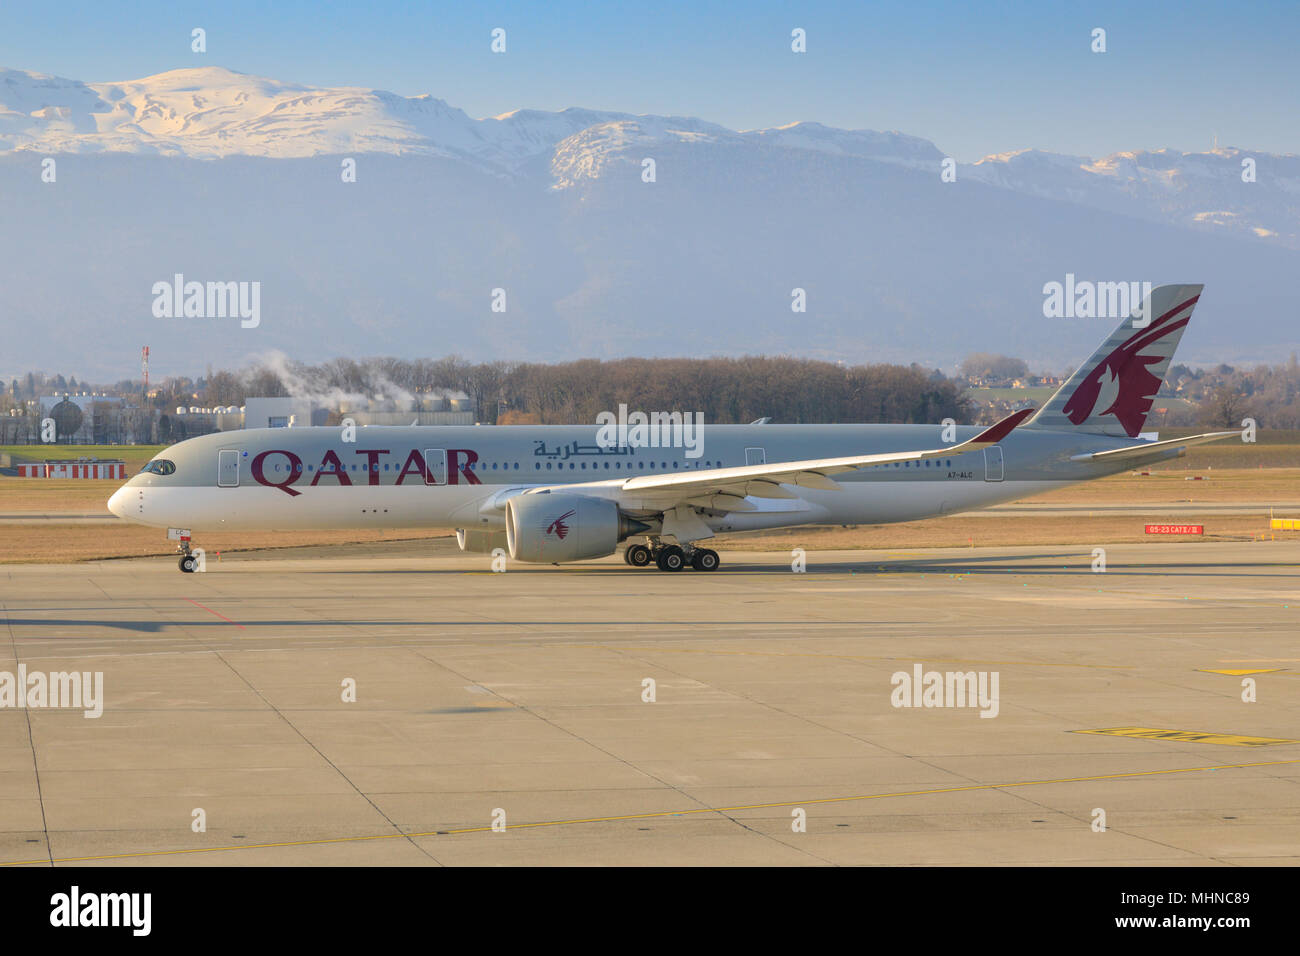 Quatar Airways Boeing 787 Dreamliner taxying across the apron at Geneva airport - Stock Image